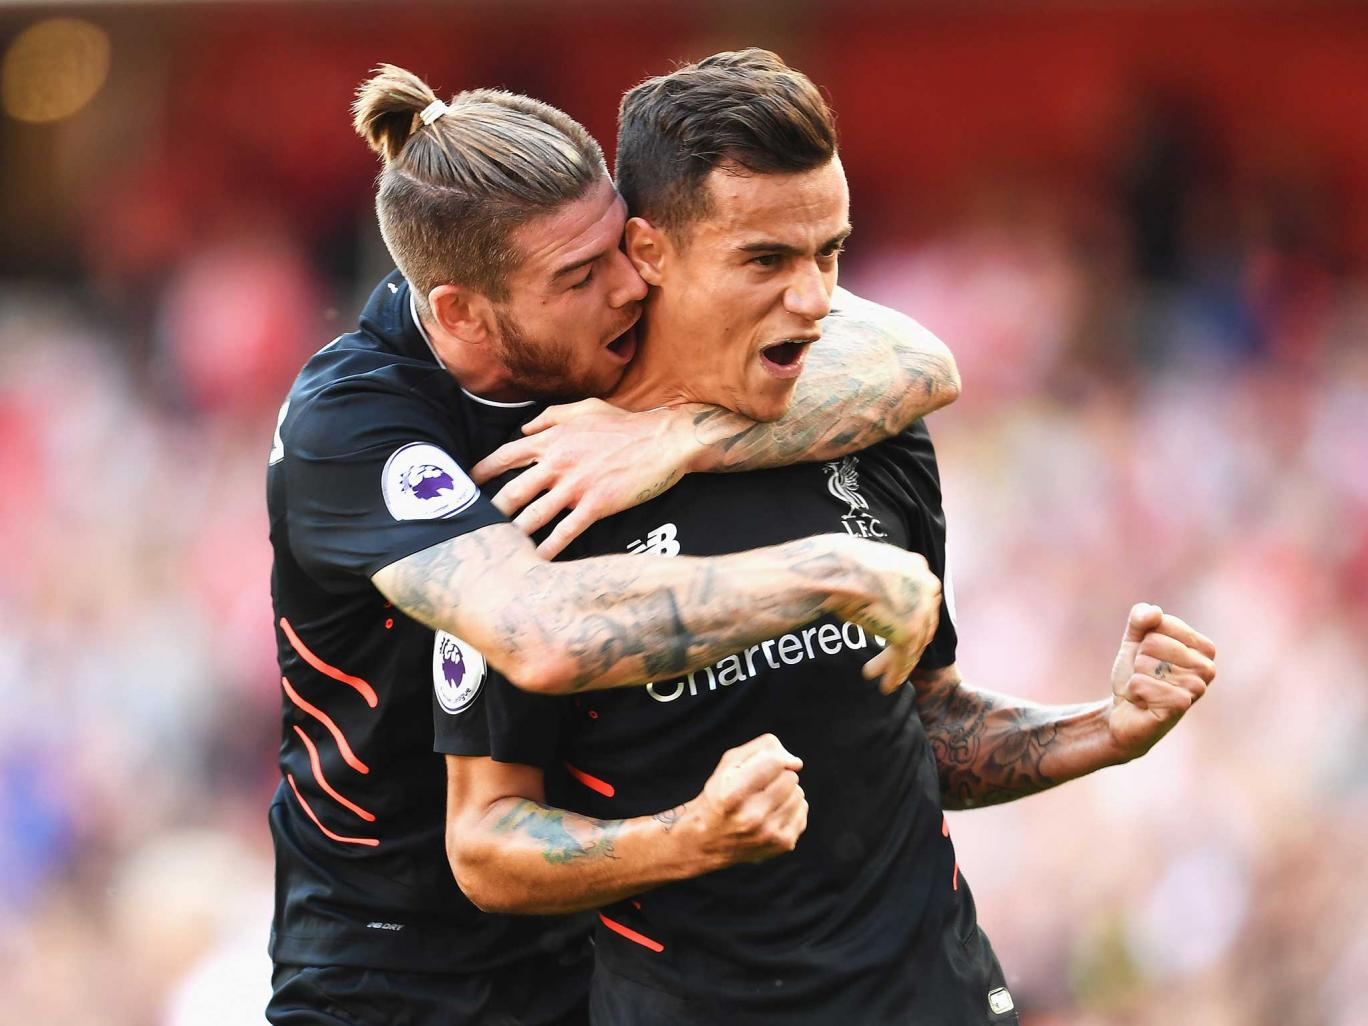 Liverpool will sweat the fitness of Coutinho, who could be the difference if he plays. (Photo via Getty Images)